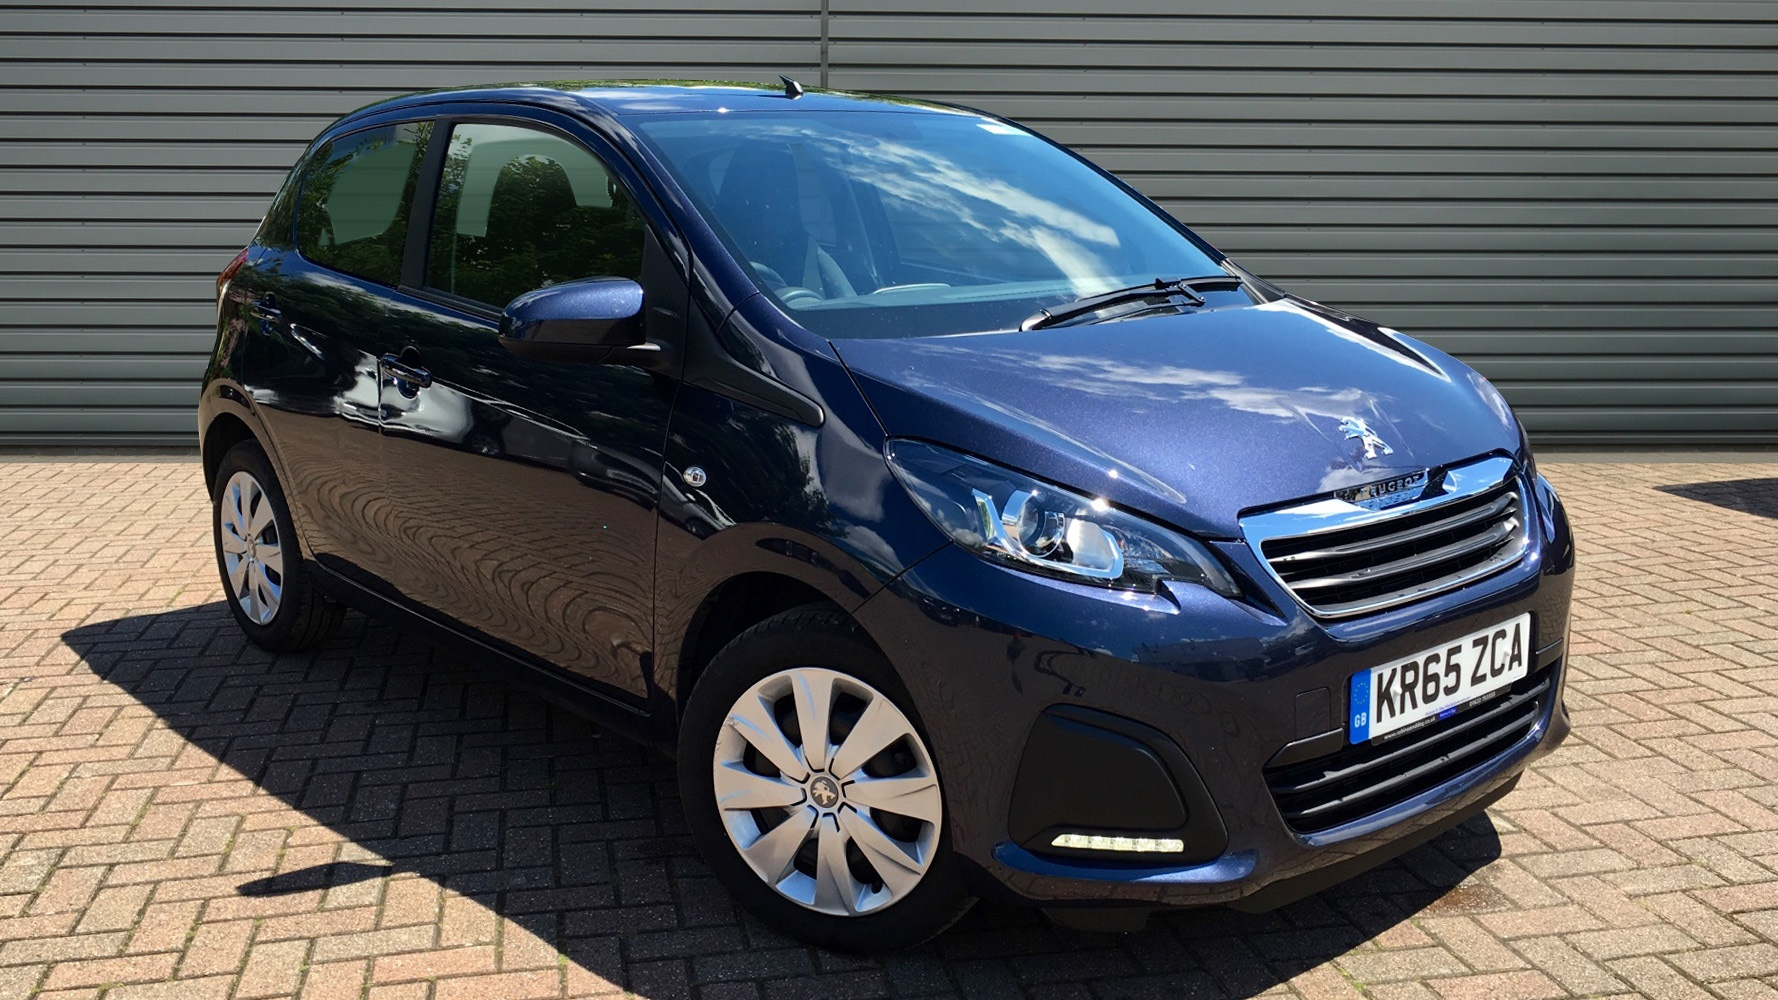 used peugeot 108 hatchback 1 0 active 2 tronic 5dr 2015 kr65zca. Black Bedroom Furniture Sets. Home Design Ideas